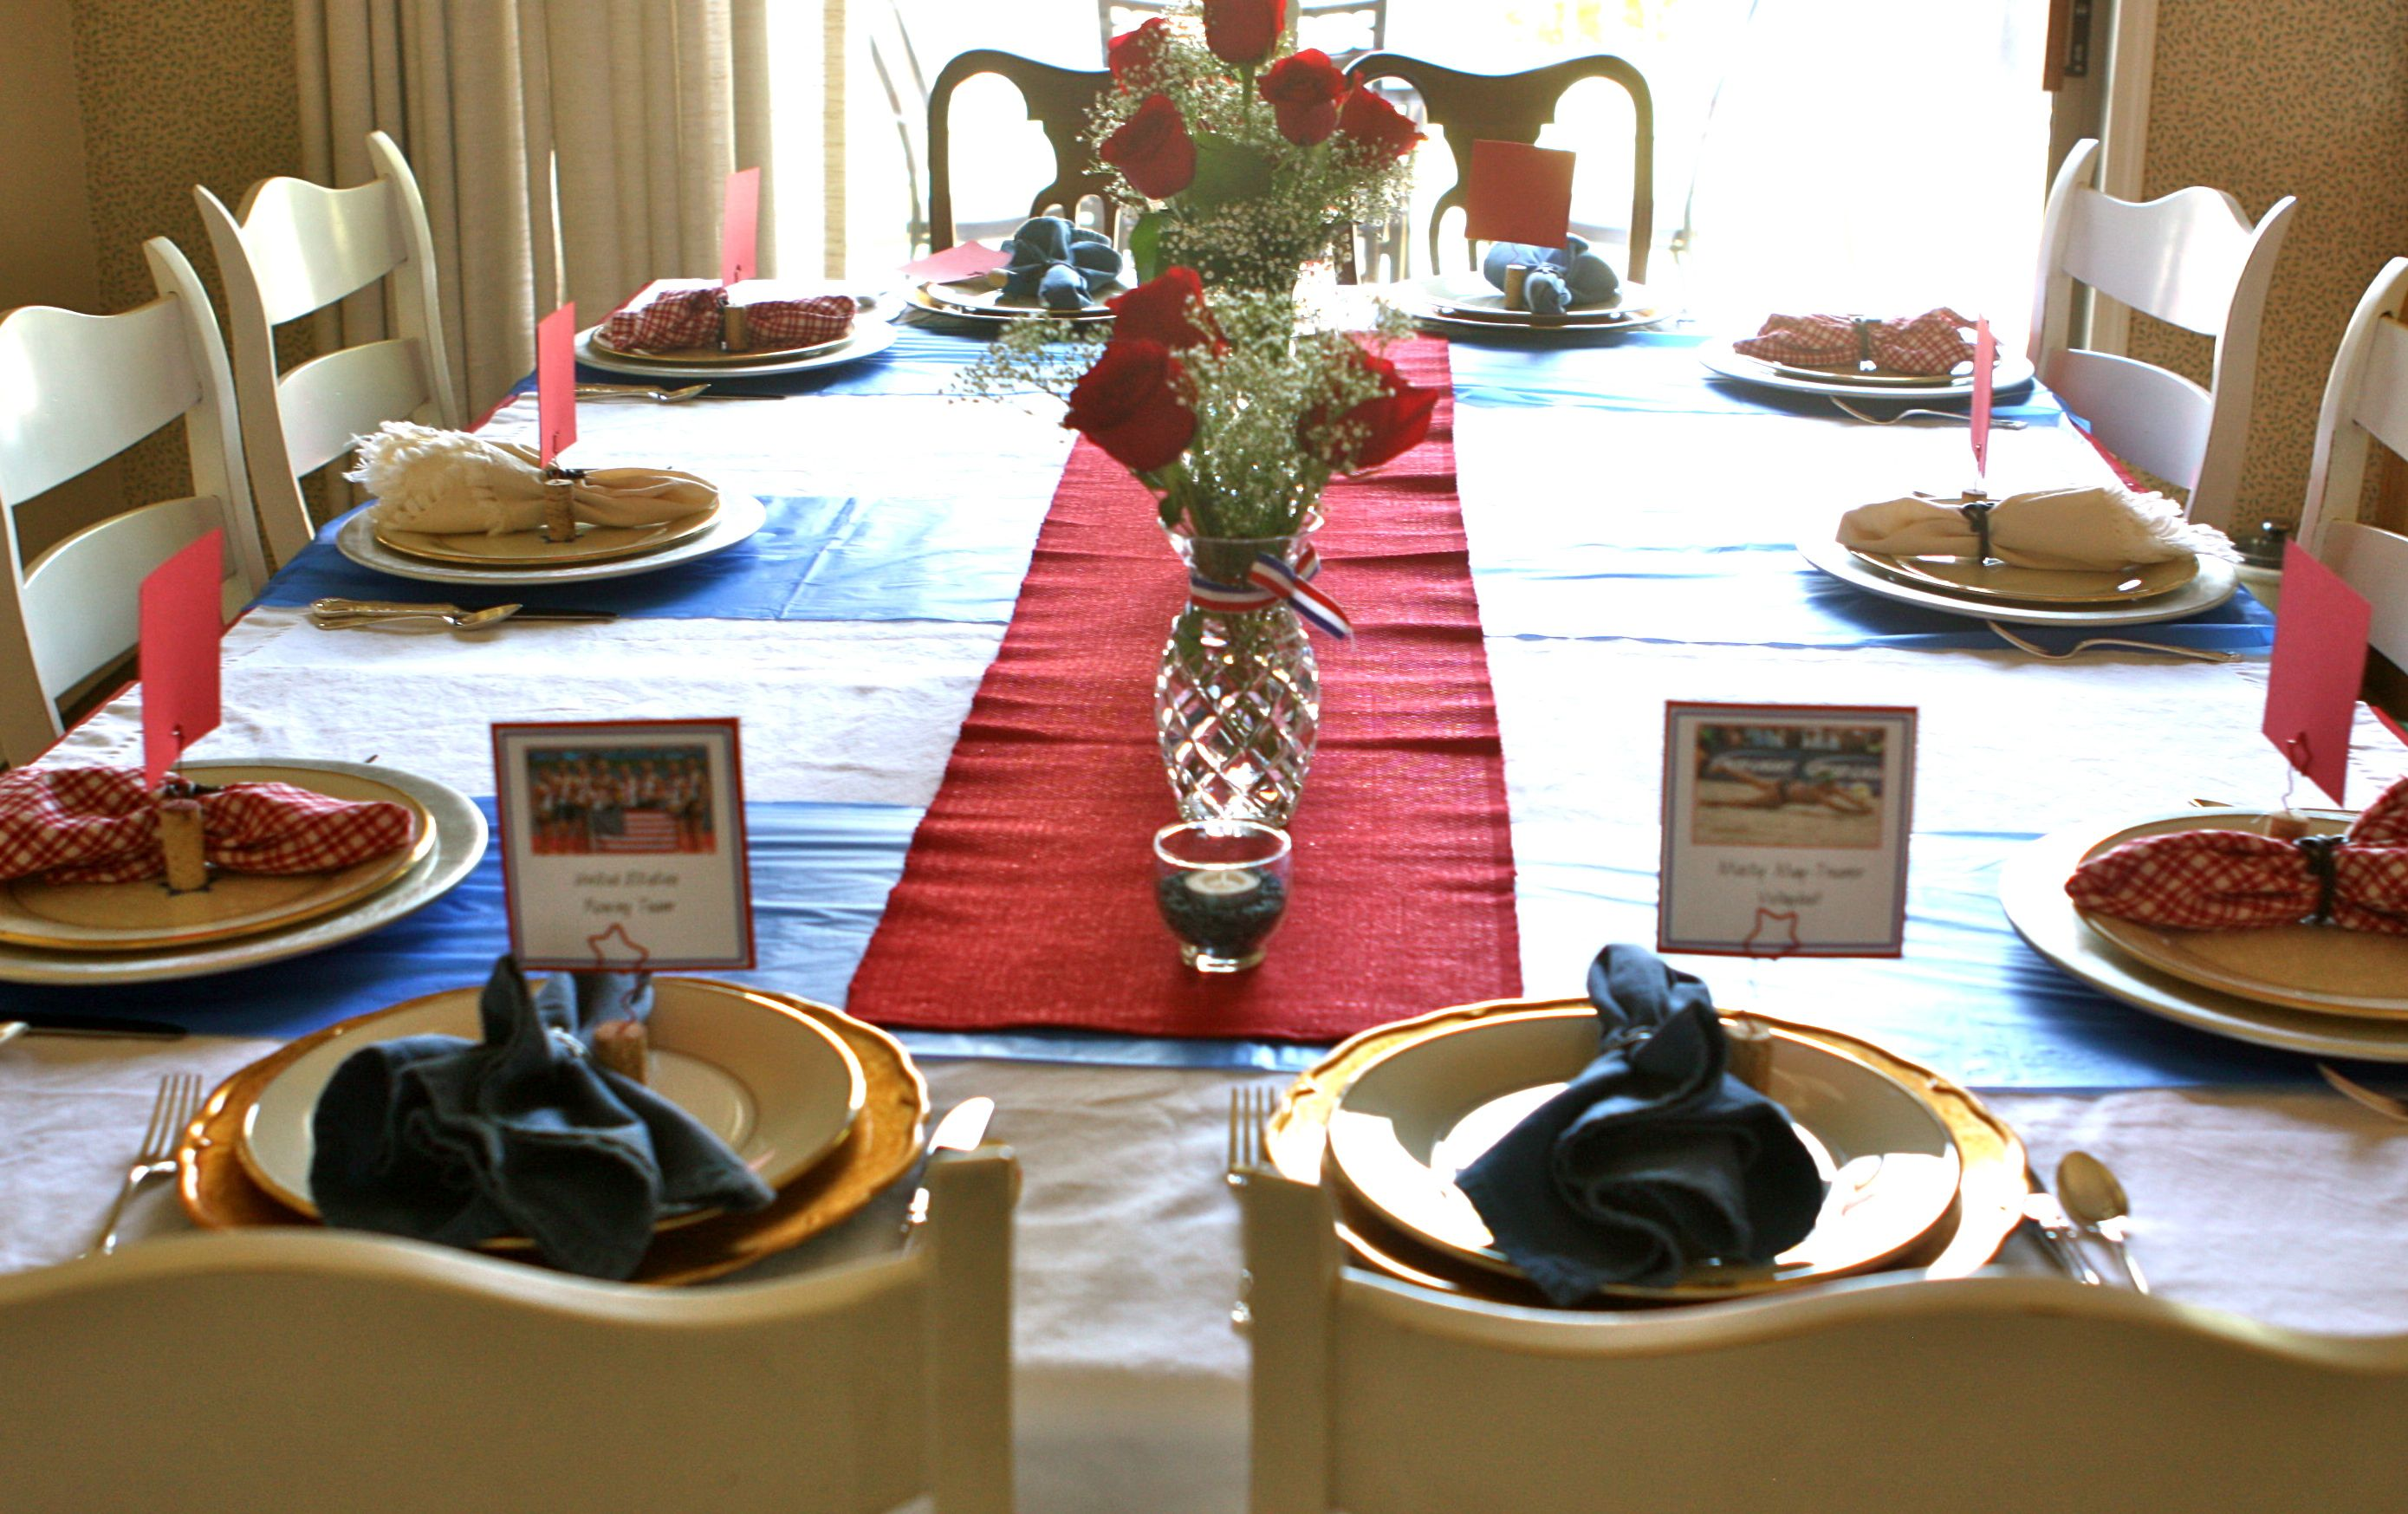 #Olympic #USA table setting. Table runner, napkins, chargers from #Goodwill.  #Tablescape #red, white & blue